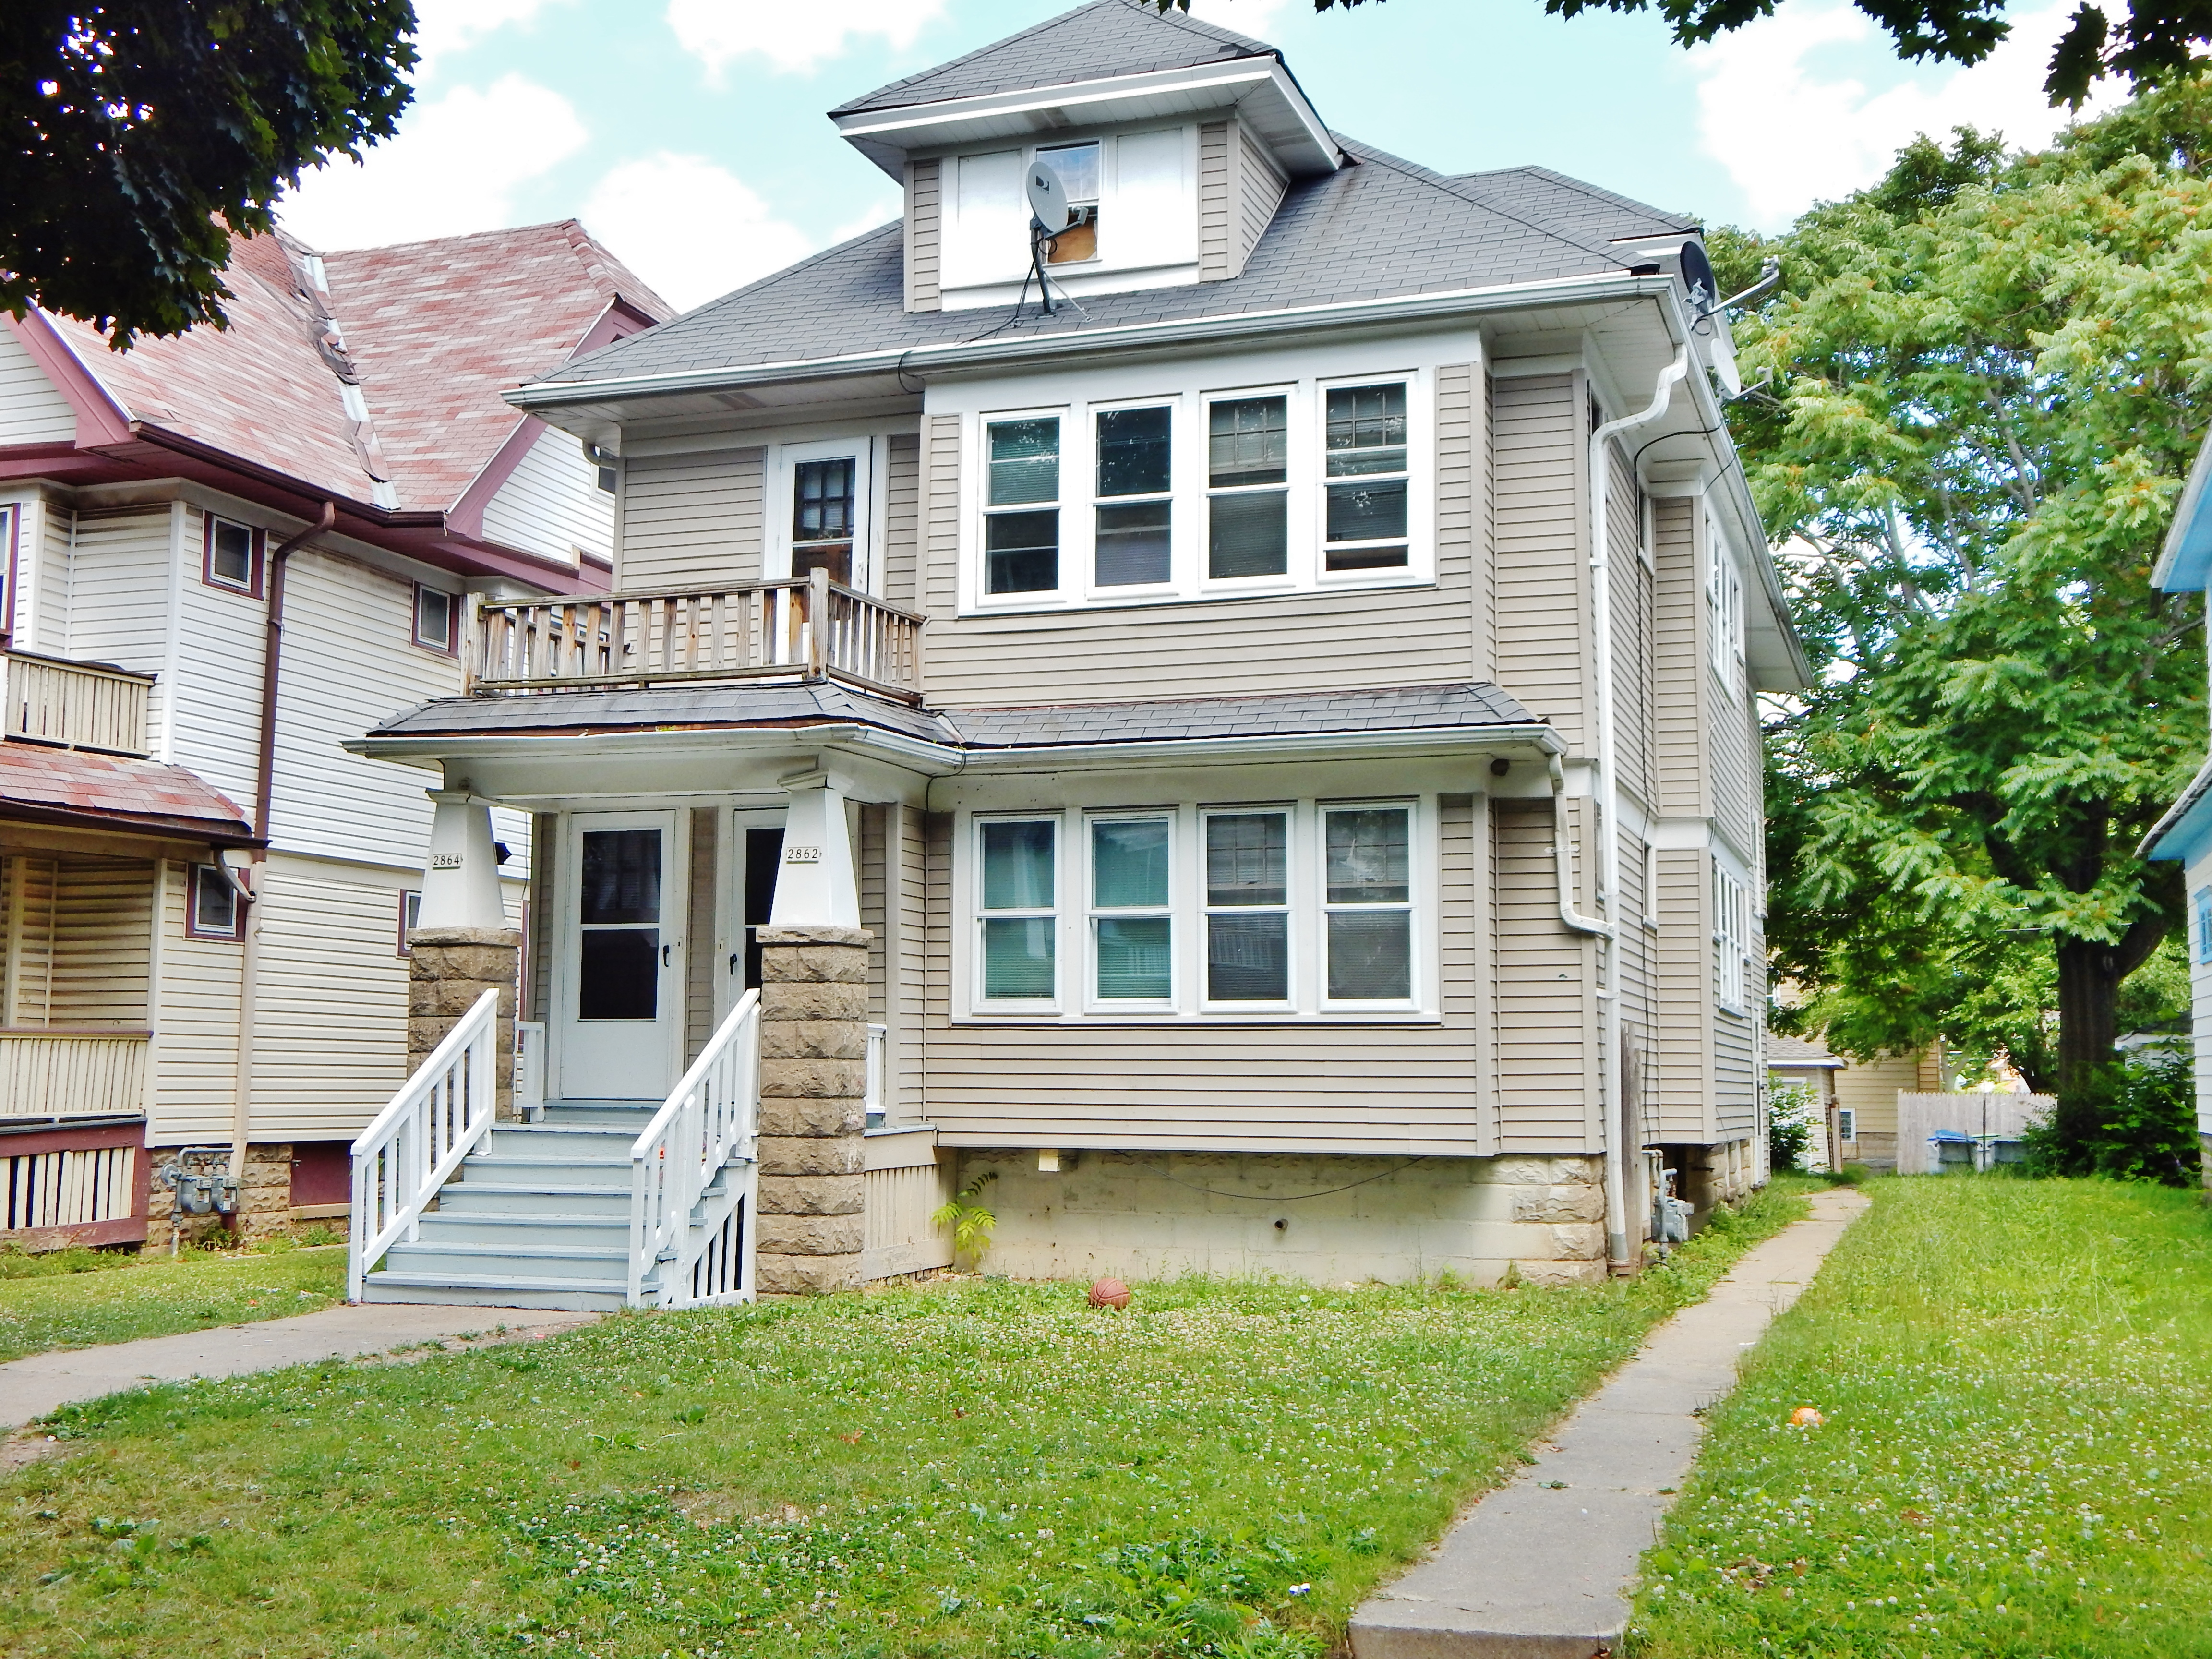 2862 64 n 48th street milwaukee wisconsin 53210 move 2 milwaukee updated kitchens and bathsceramic tile newer furnaces updated electric hwfs natural wood work 2 car garage dailygadgetfo Images